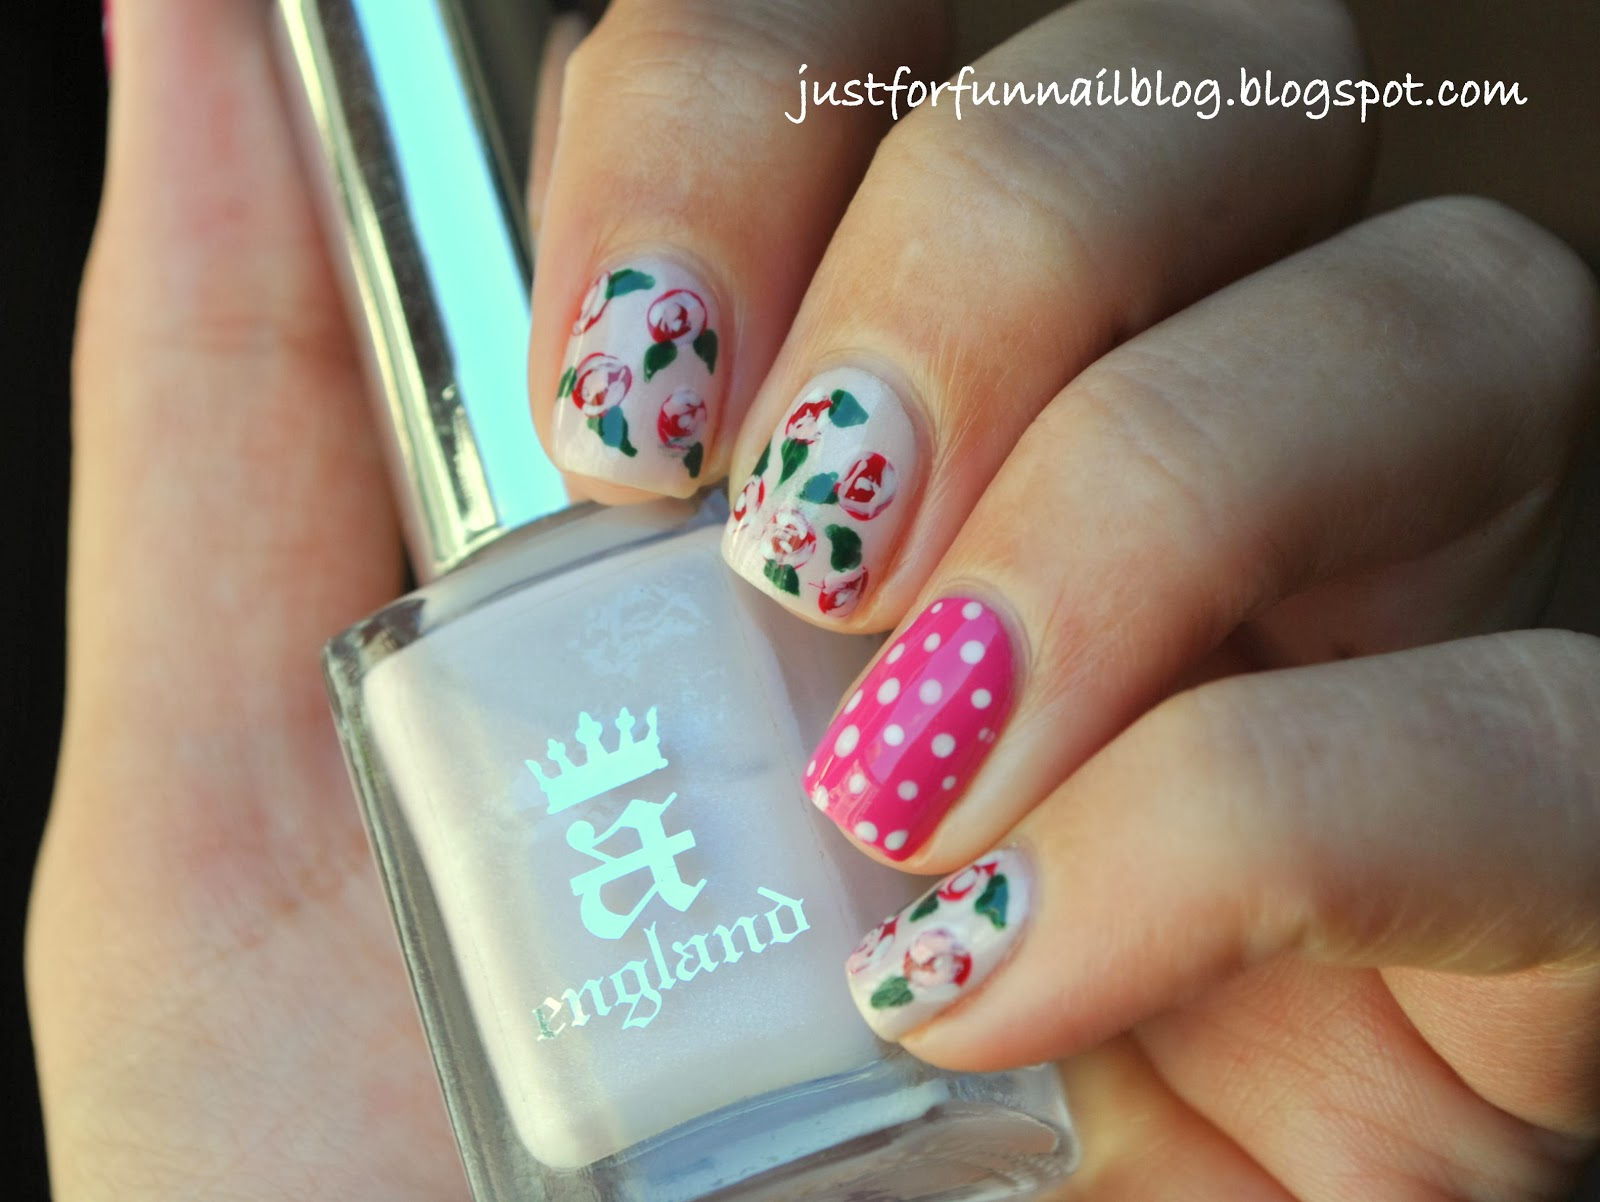 Week of Love V'day Nail Art Challenge - Day 3 - Roses